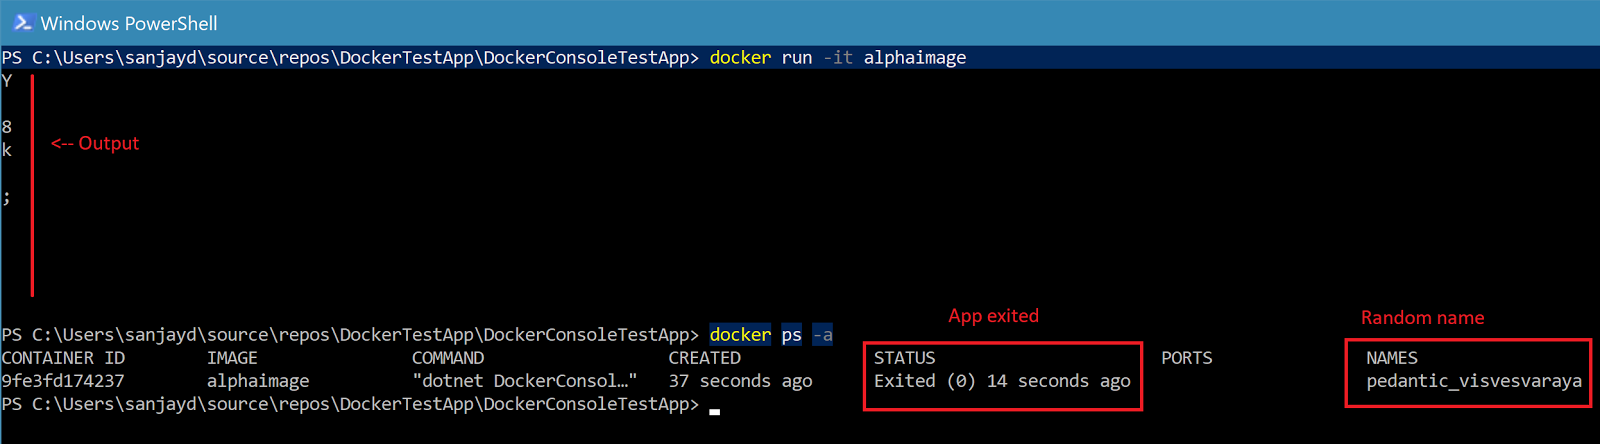 Getting Started With Docker For Windows - Containerize a C#